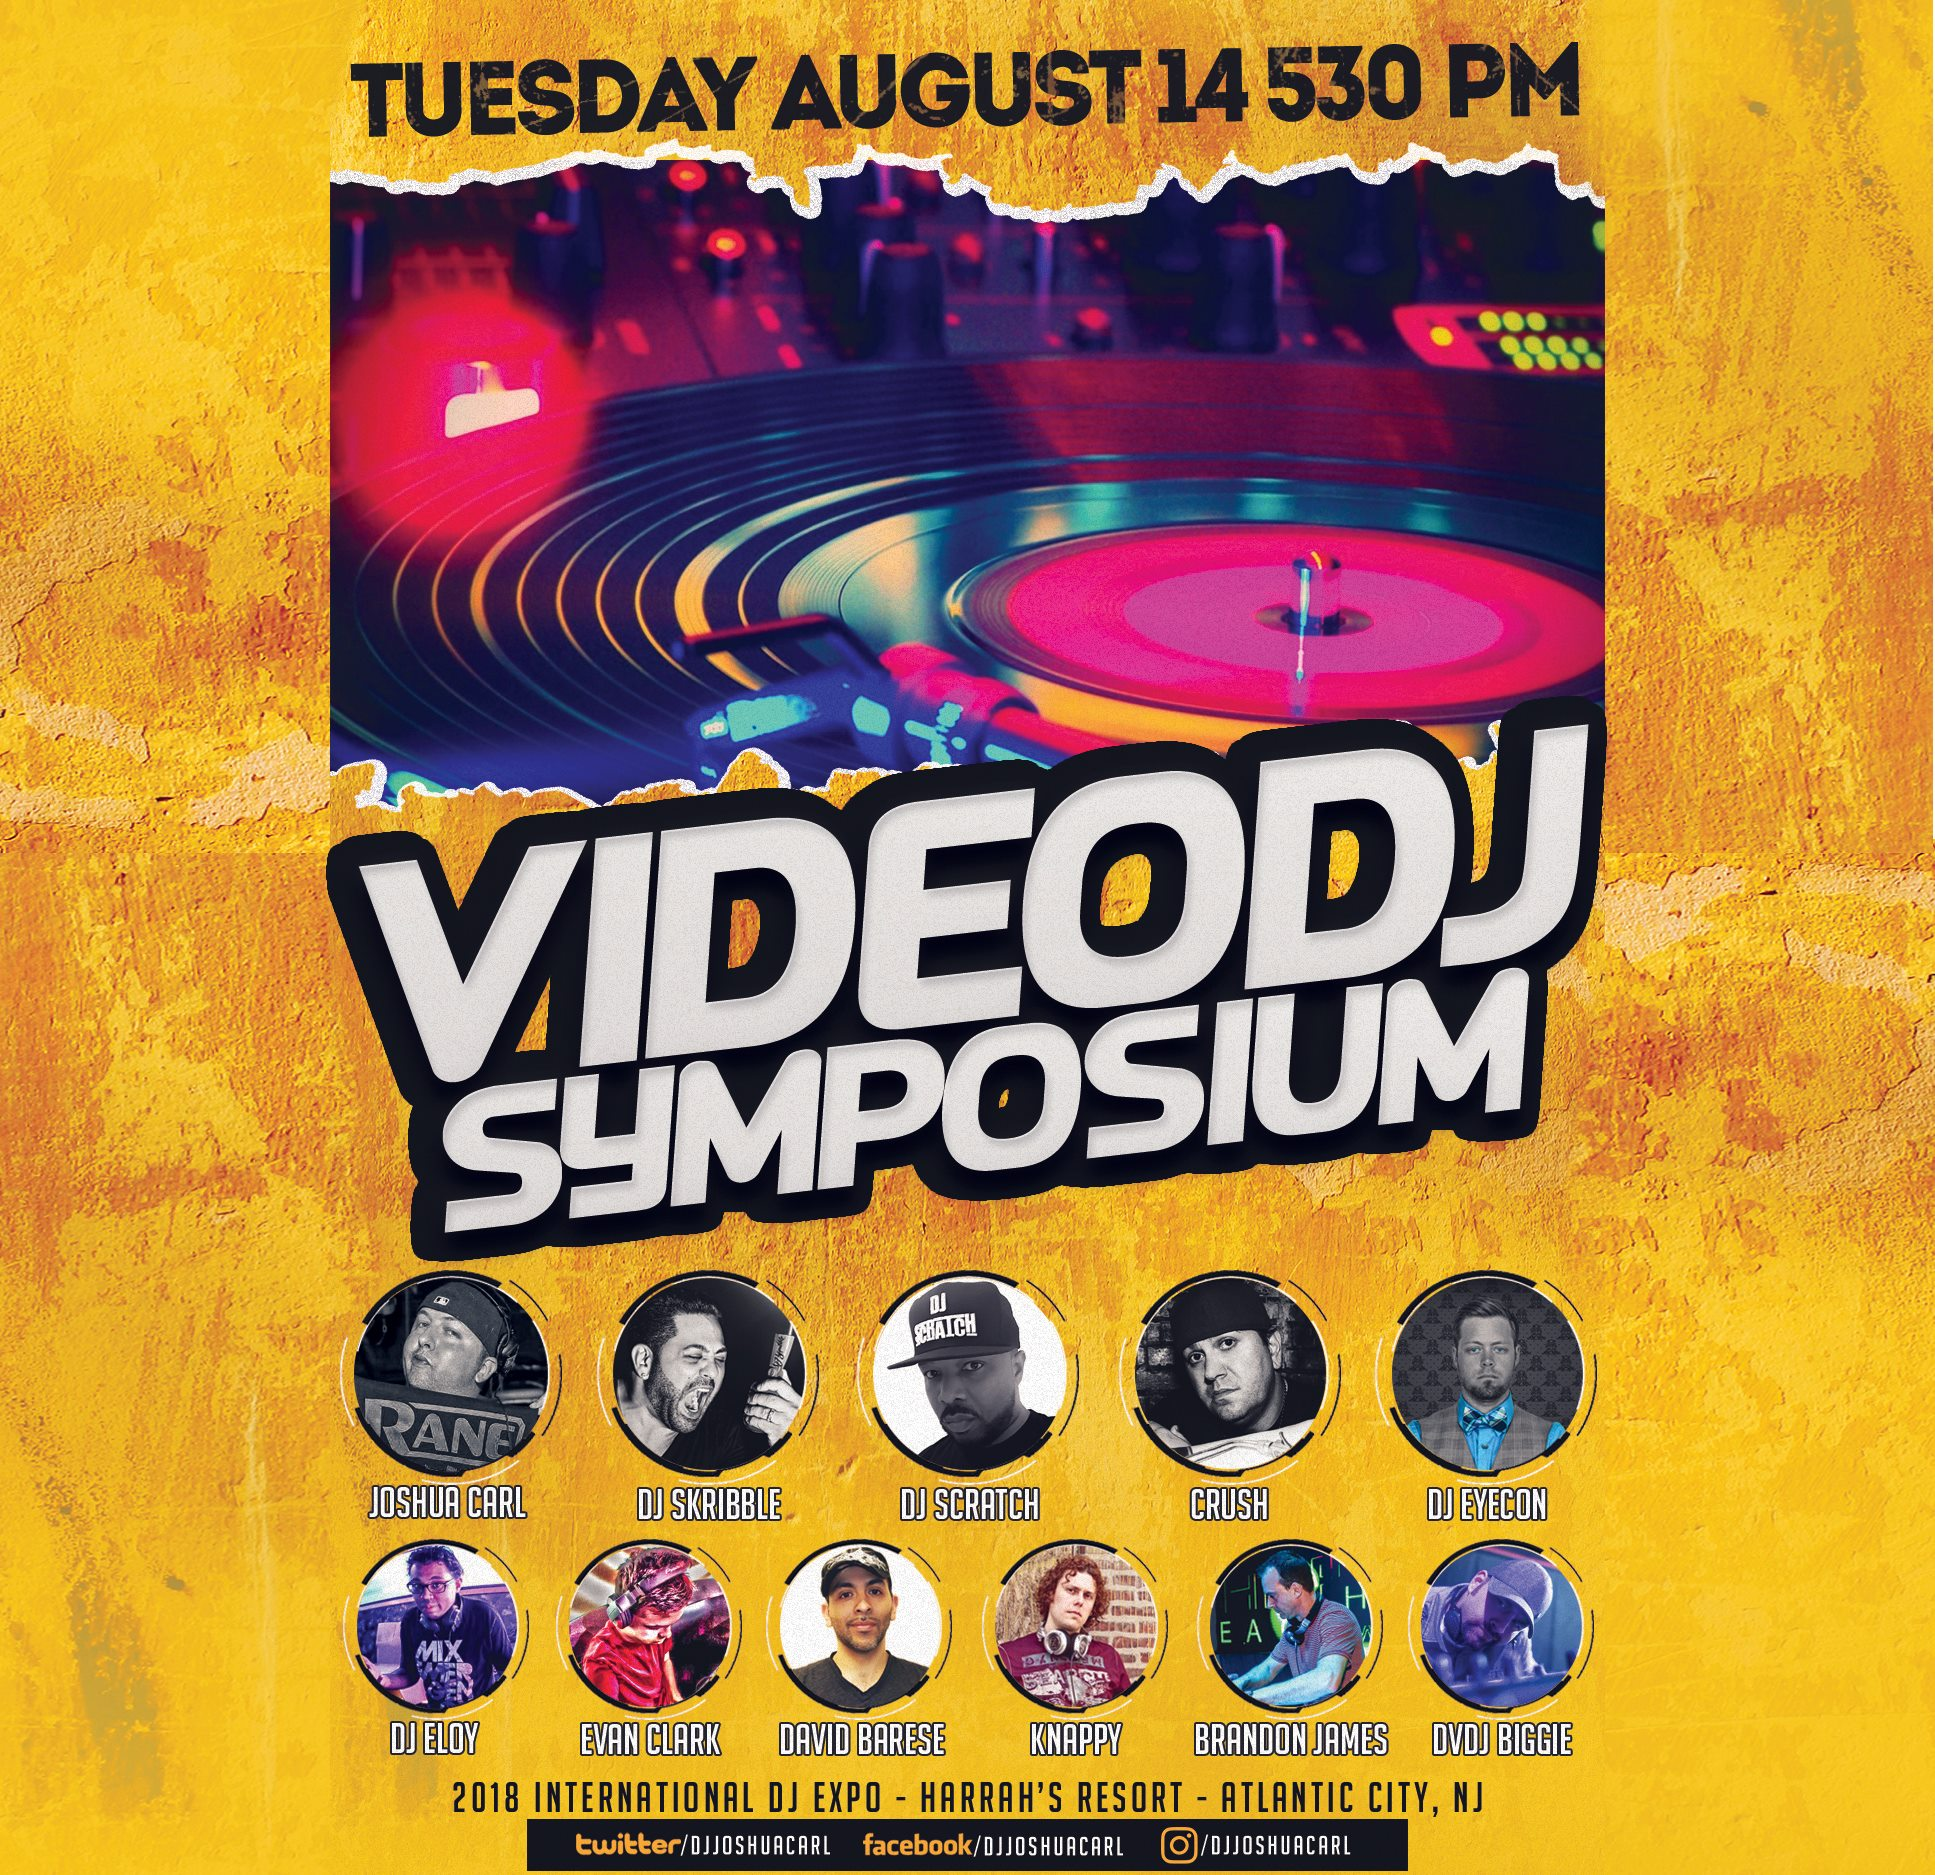 dj expo 2018 - video dj symposium flyer